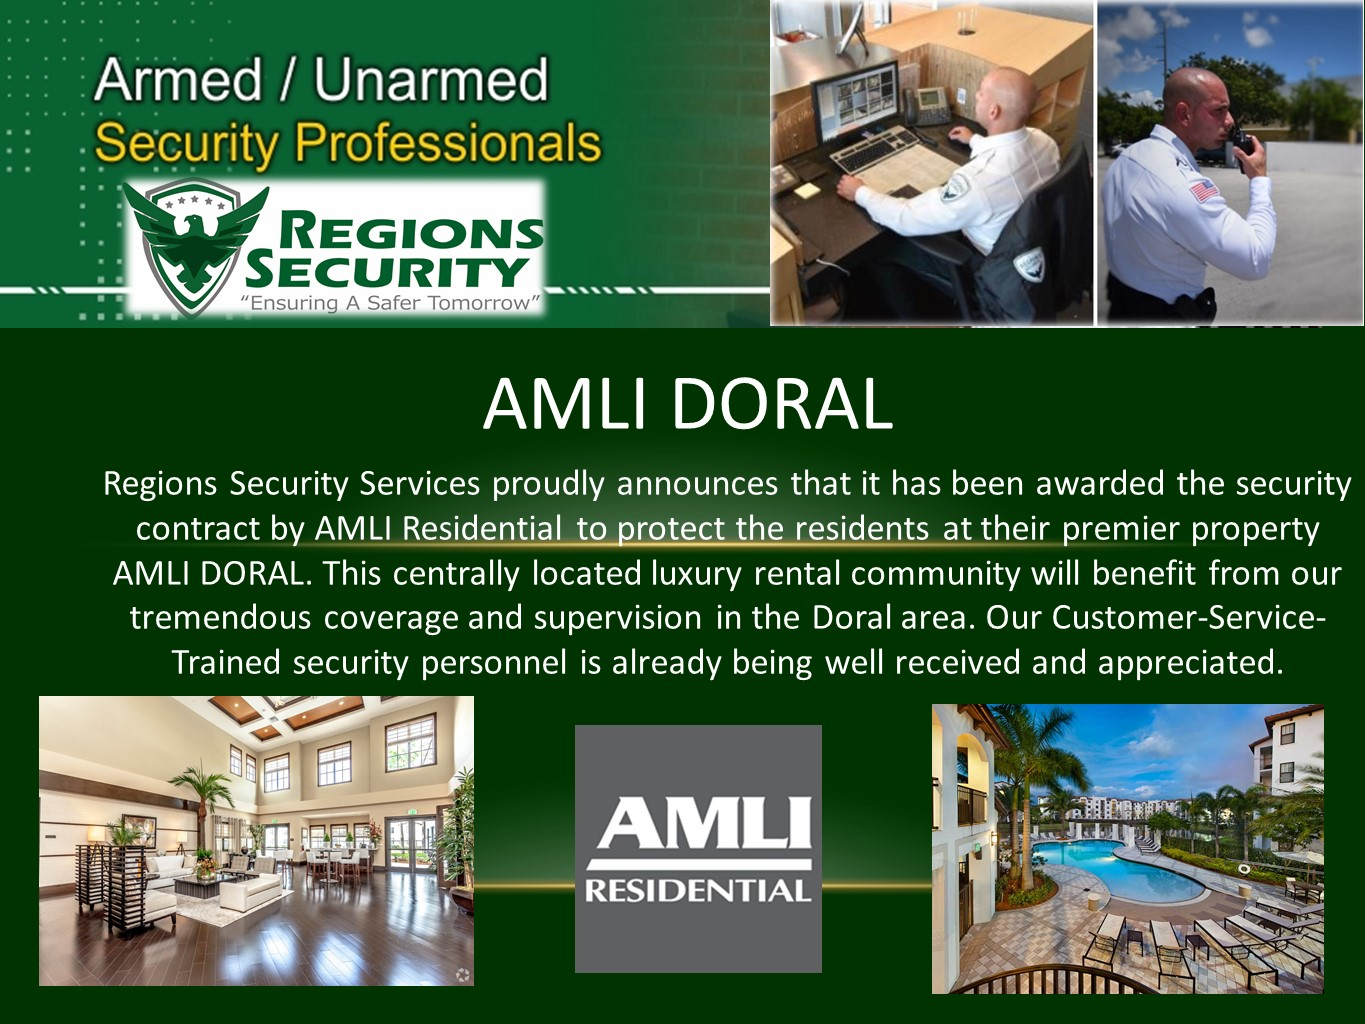 Doral Regions Security Services